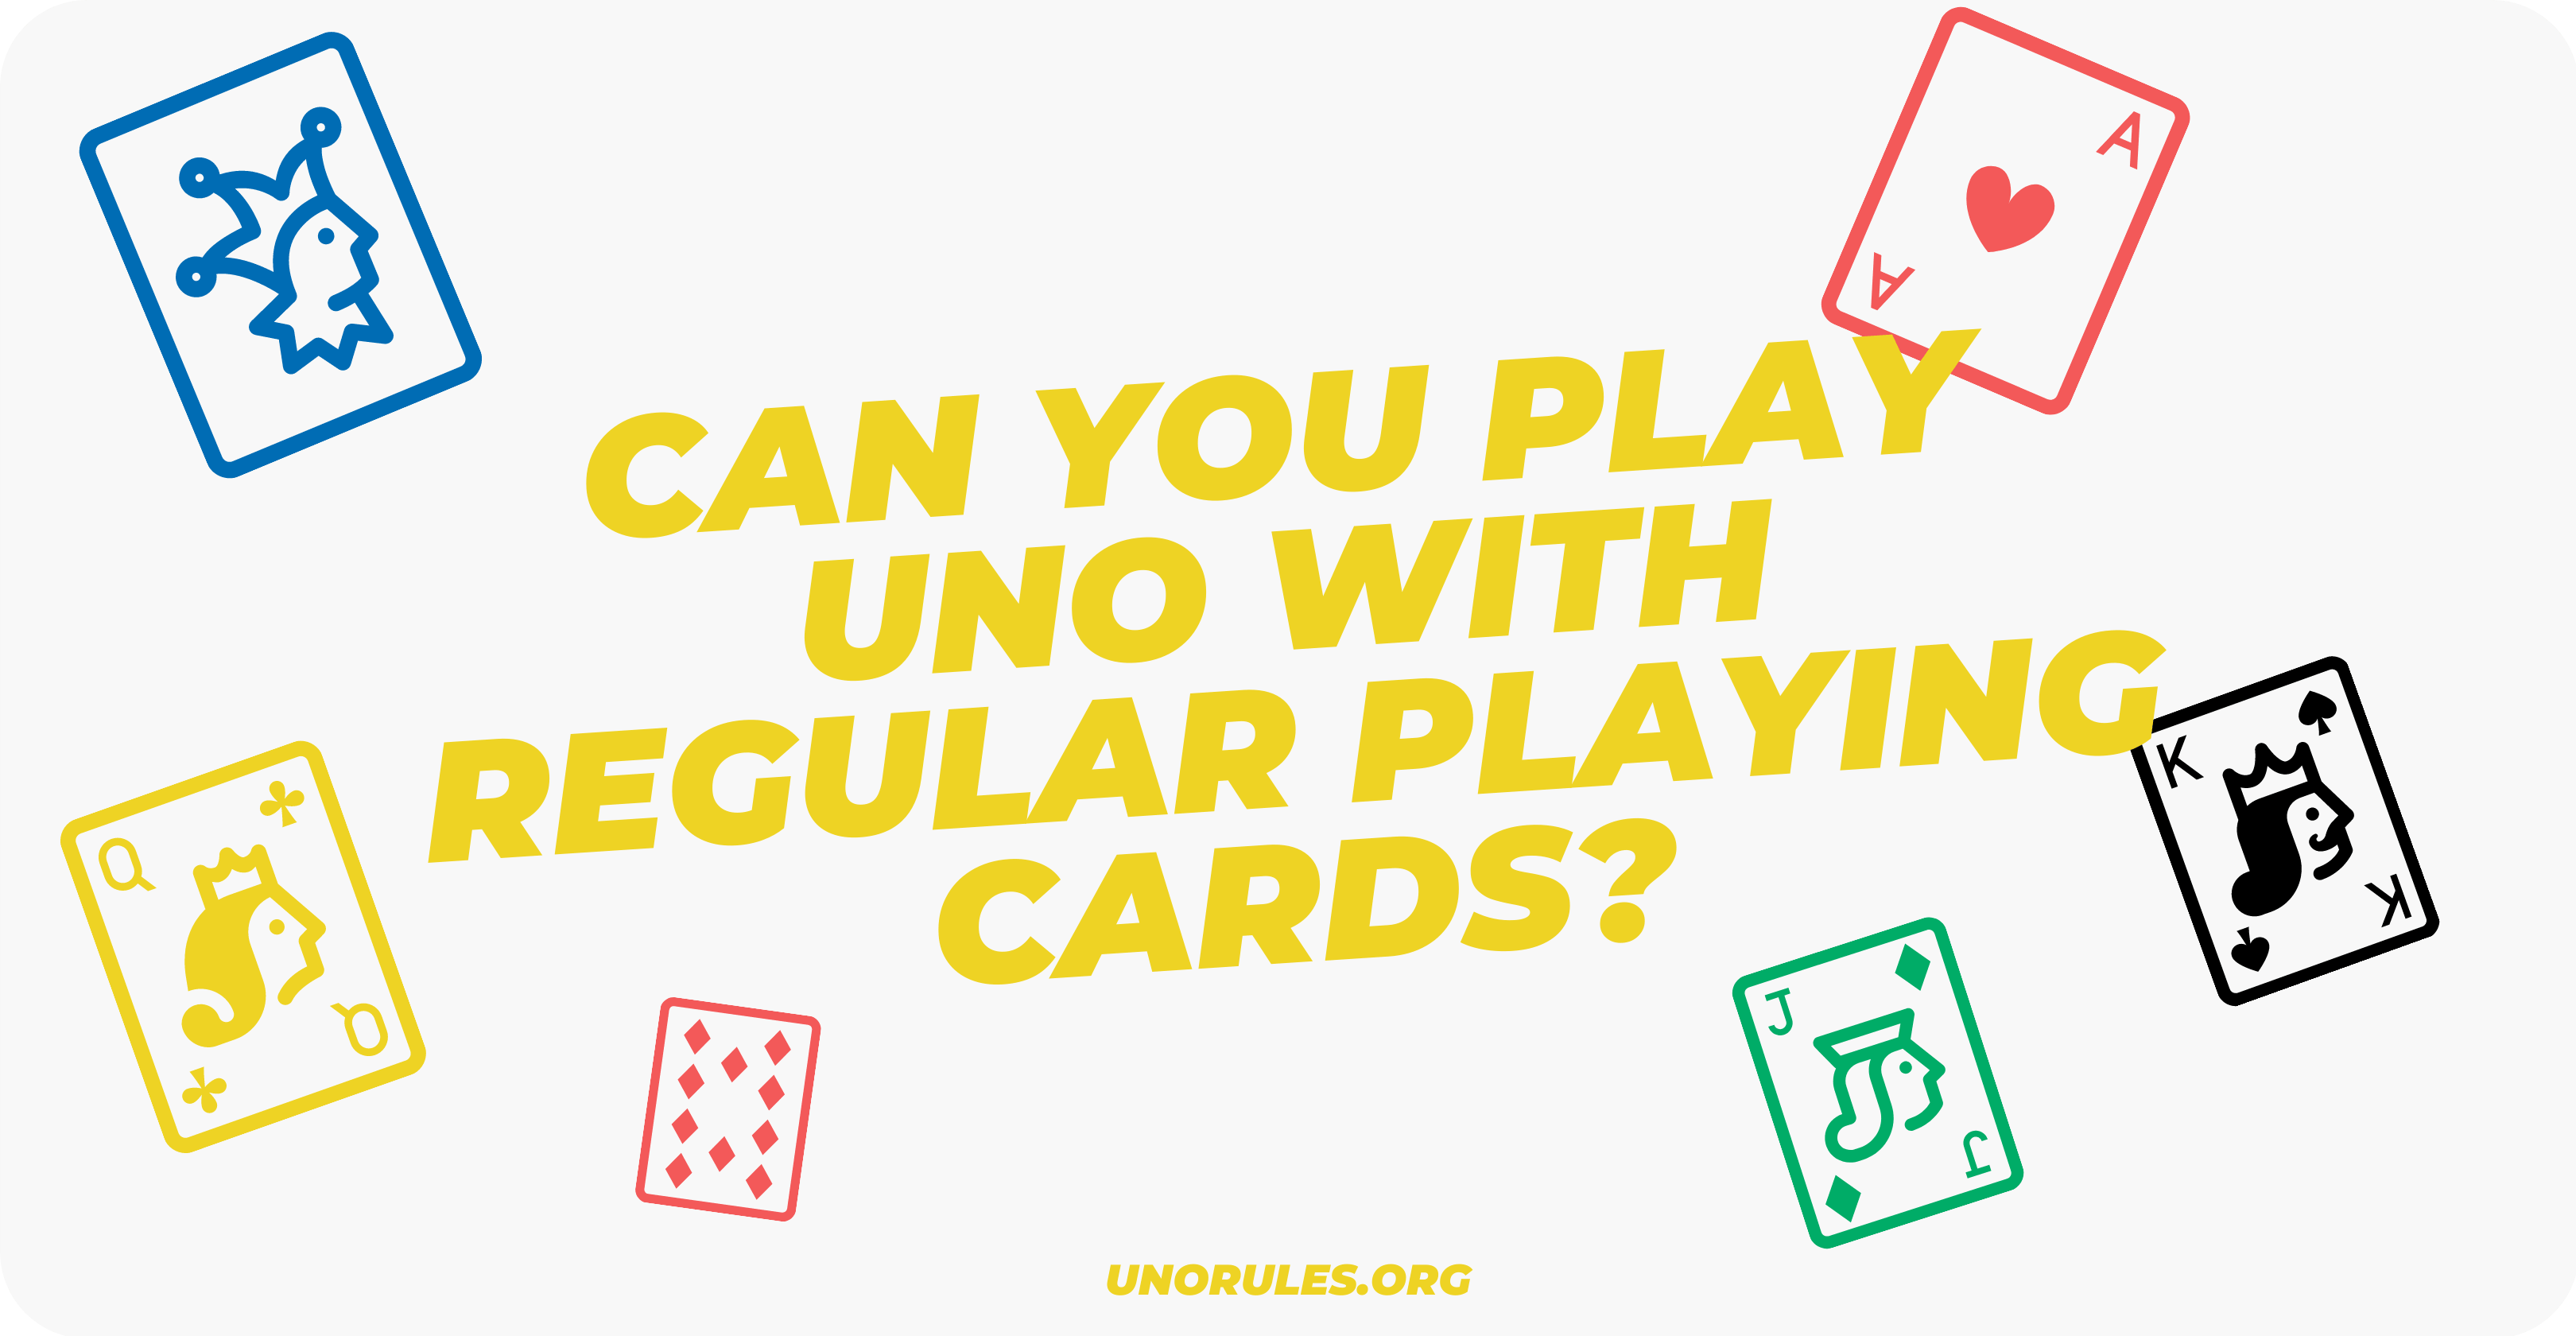 Can you play Uno with regular playing cards